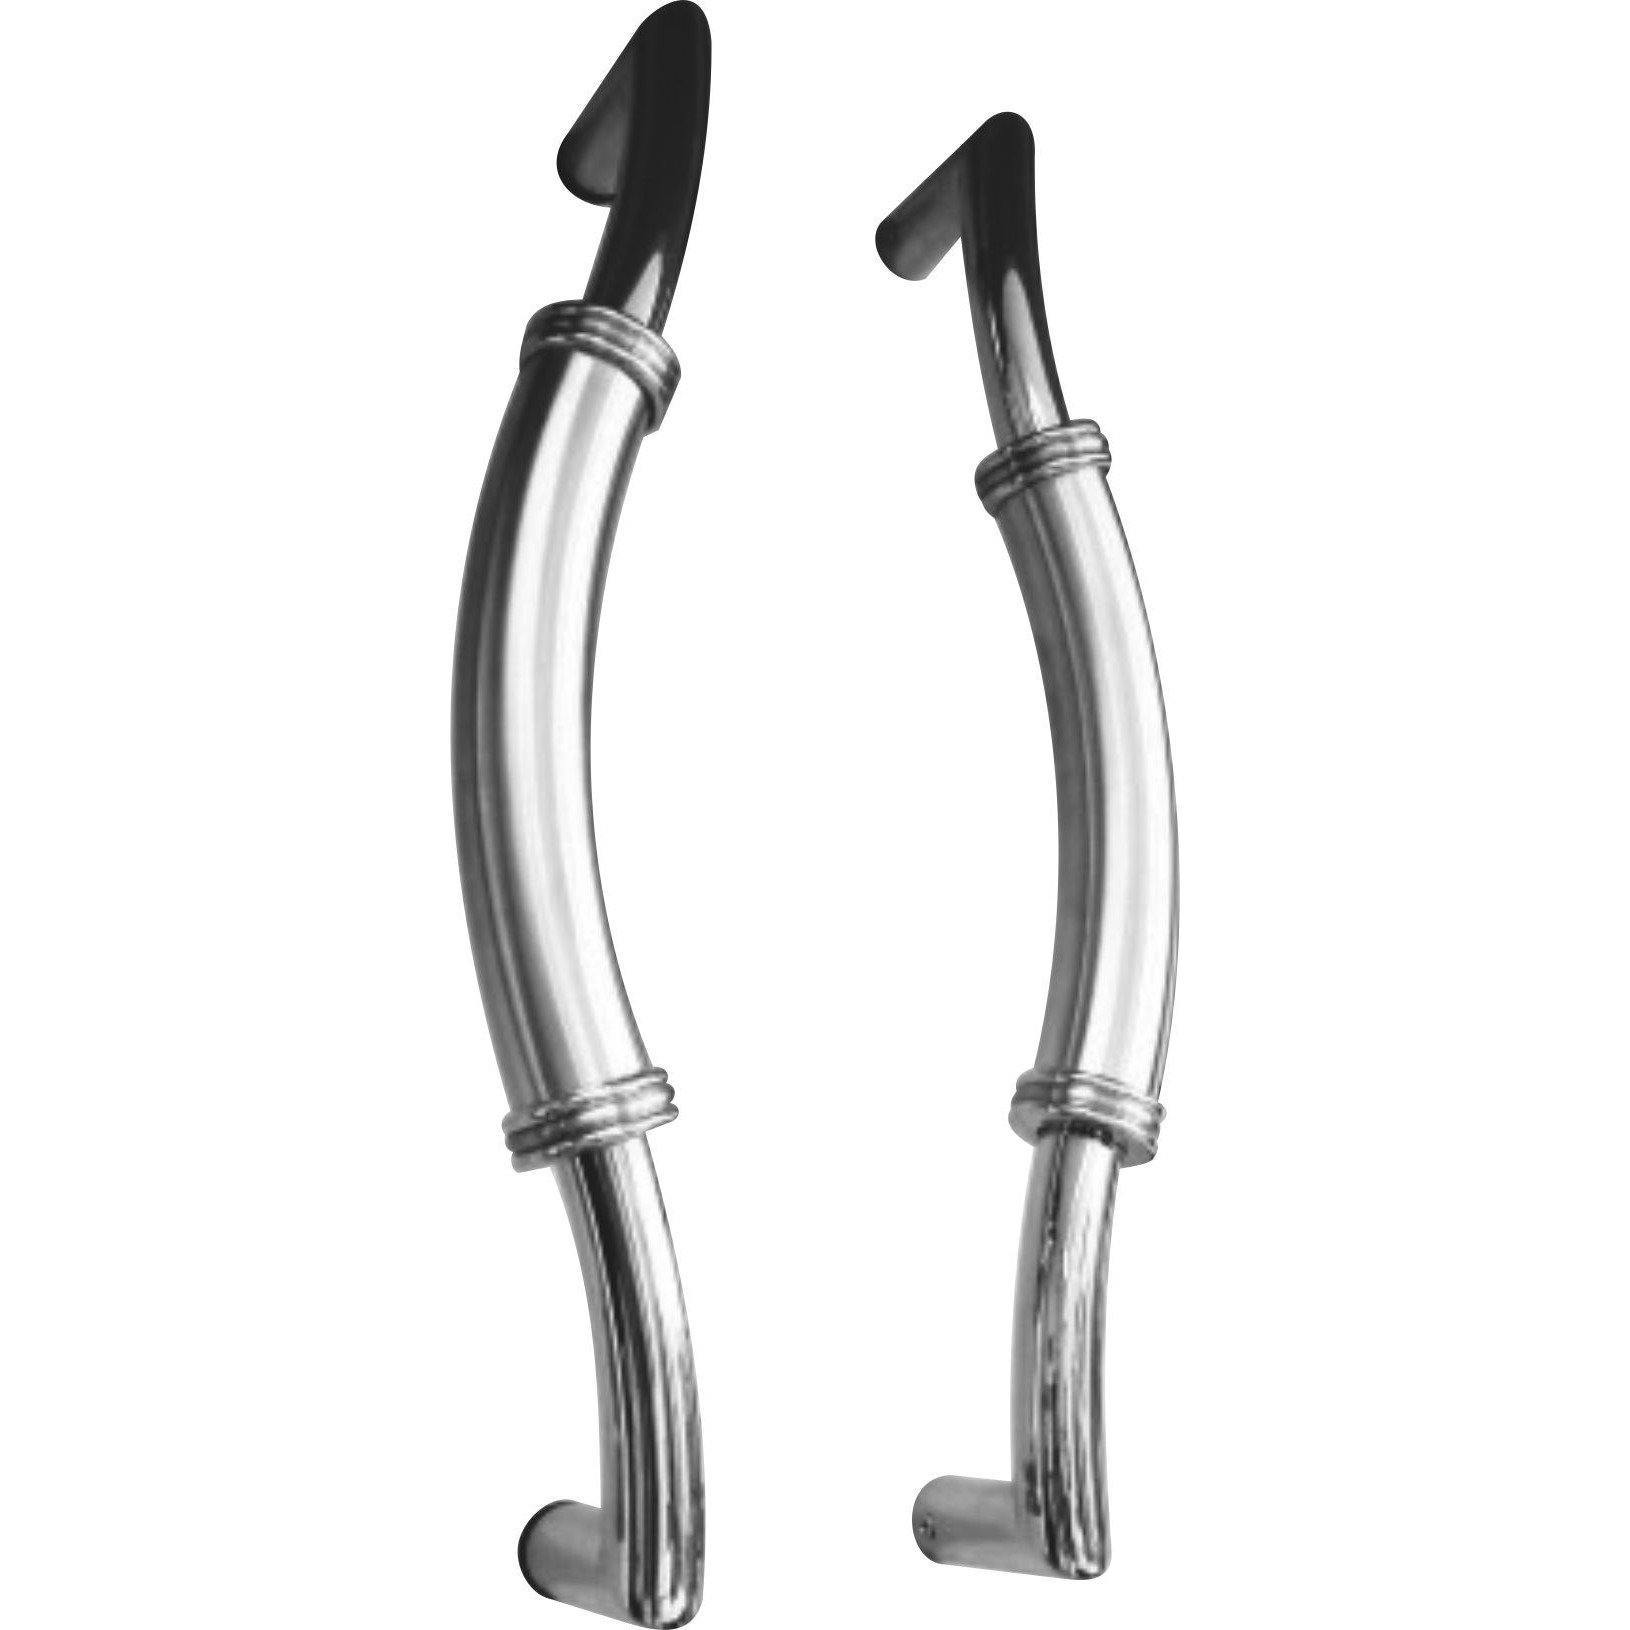 Curved stainless steel pull handle - two-tone